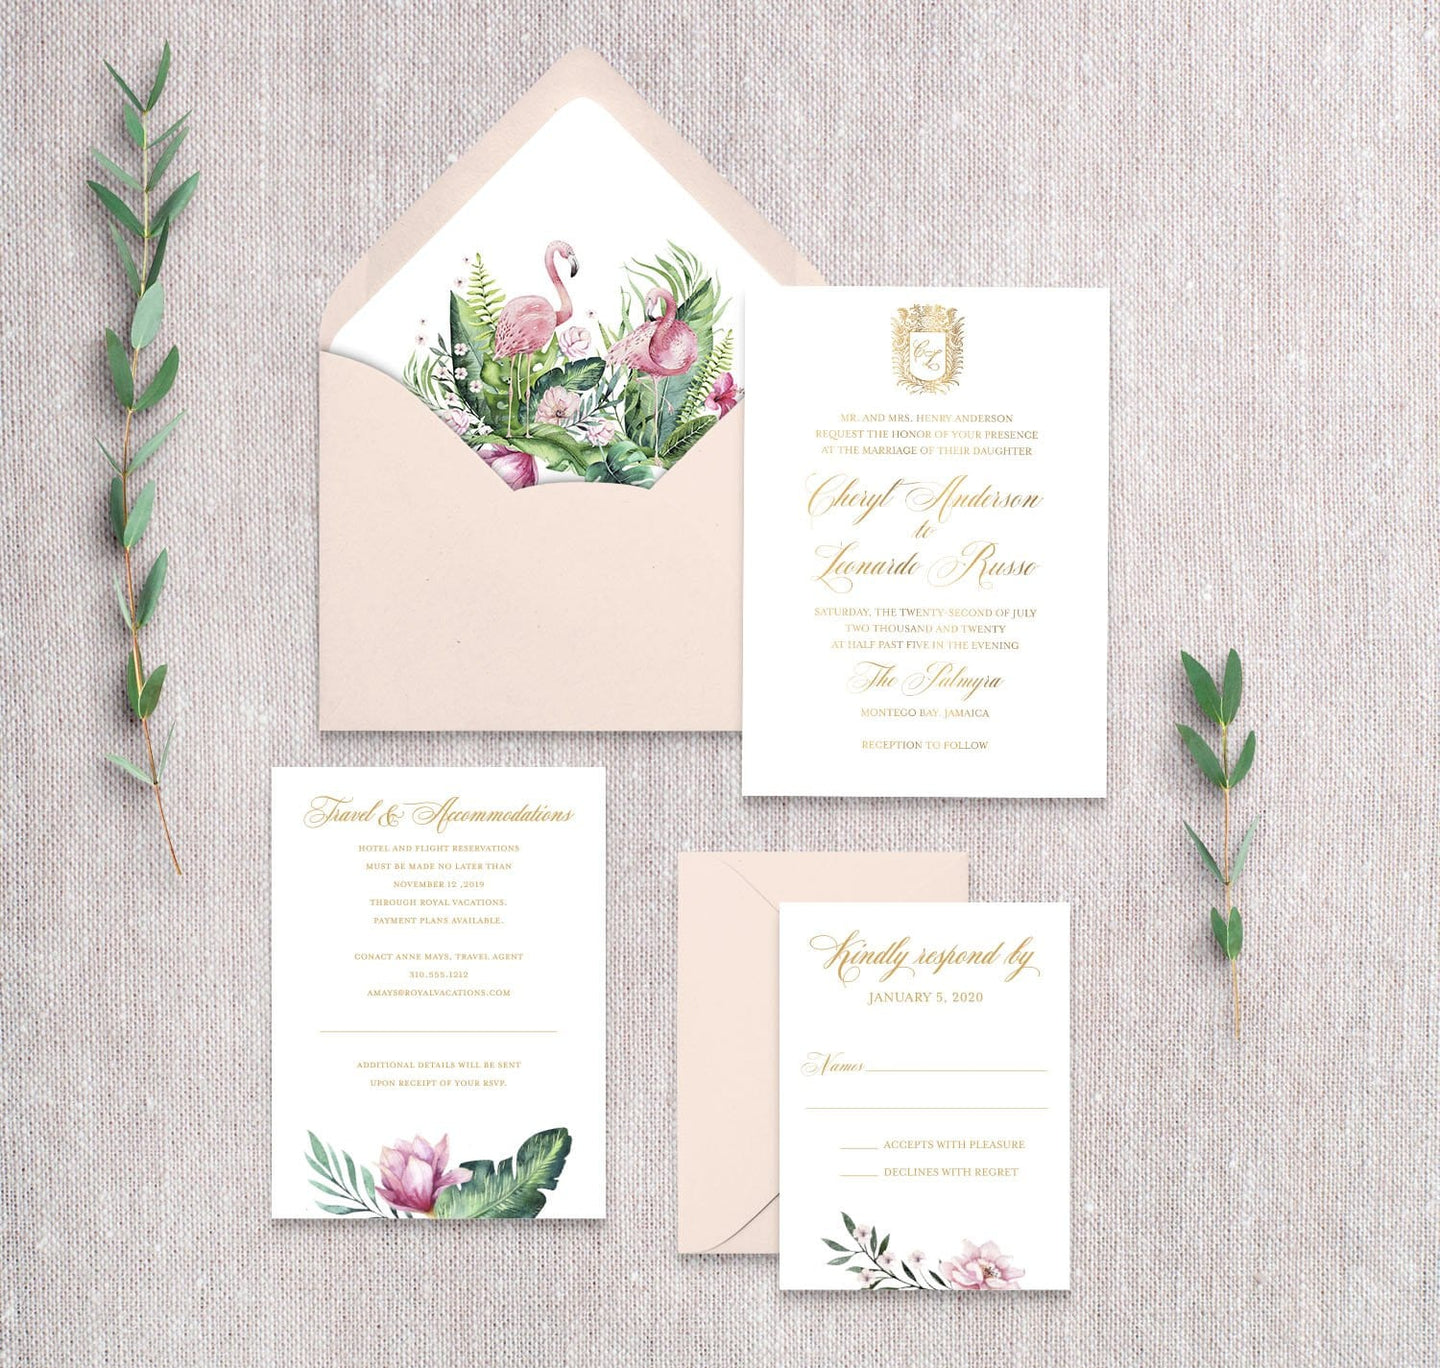 Royal Flamingo Invitation